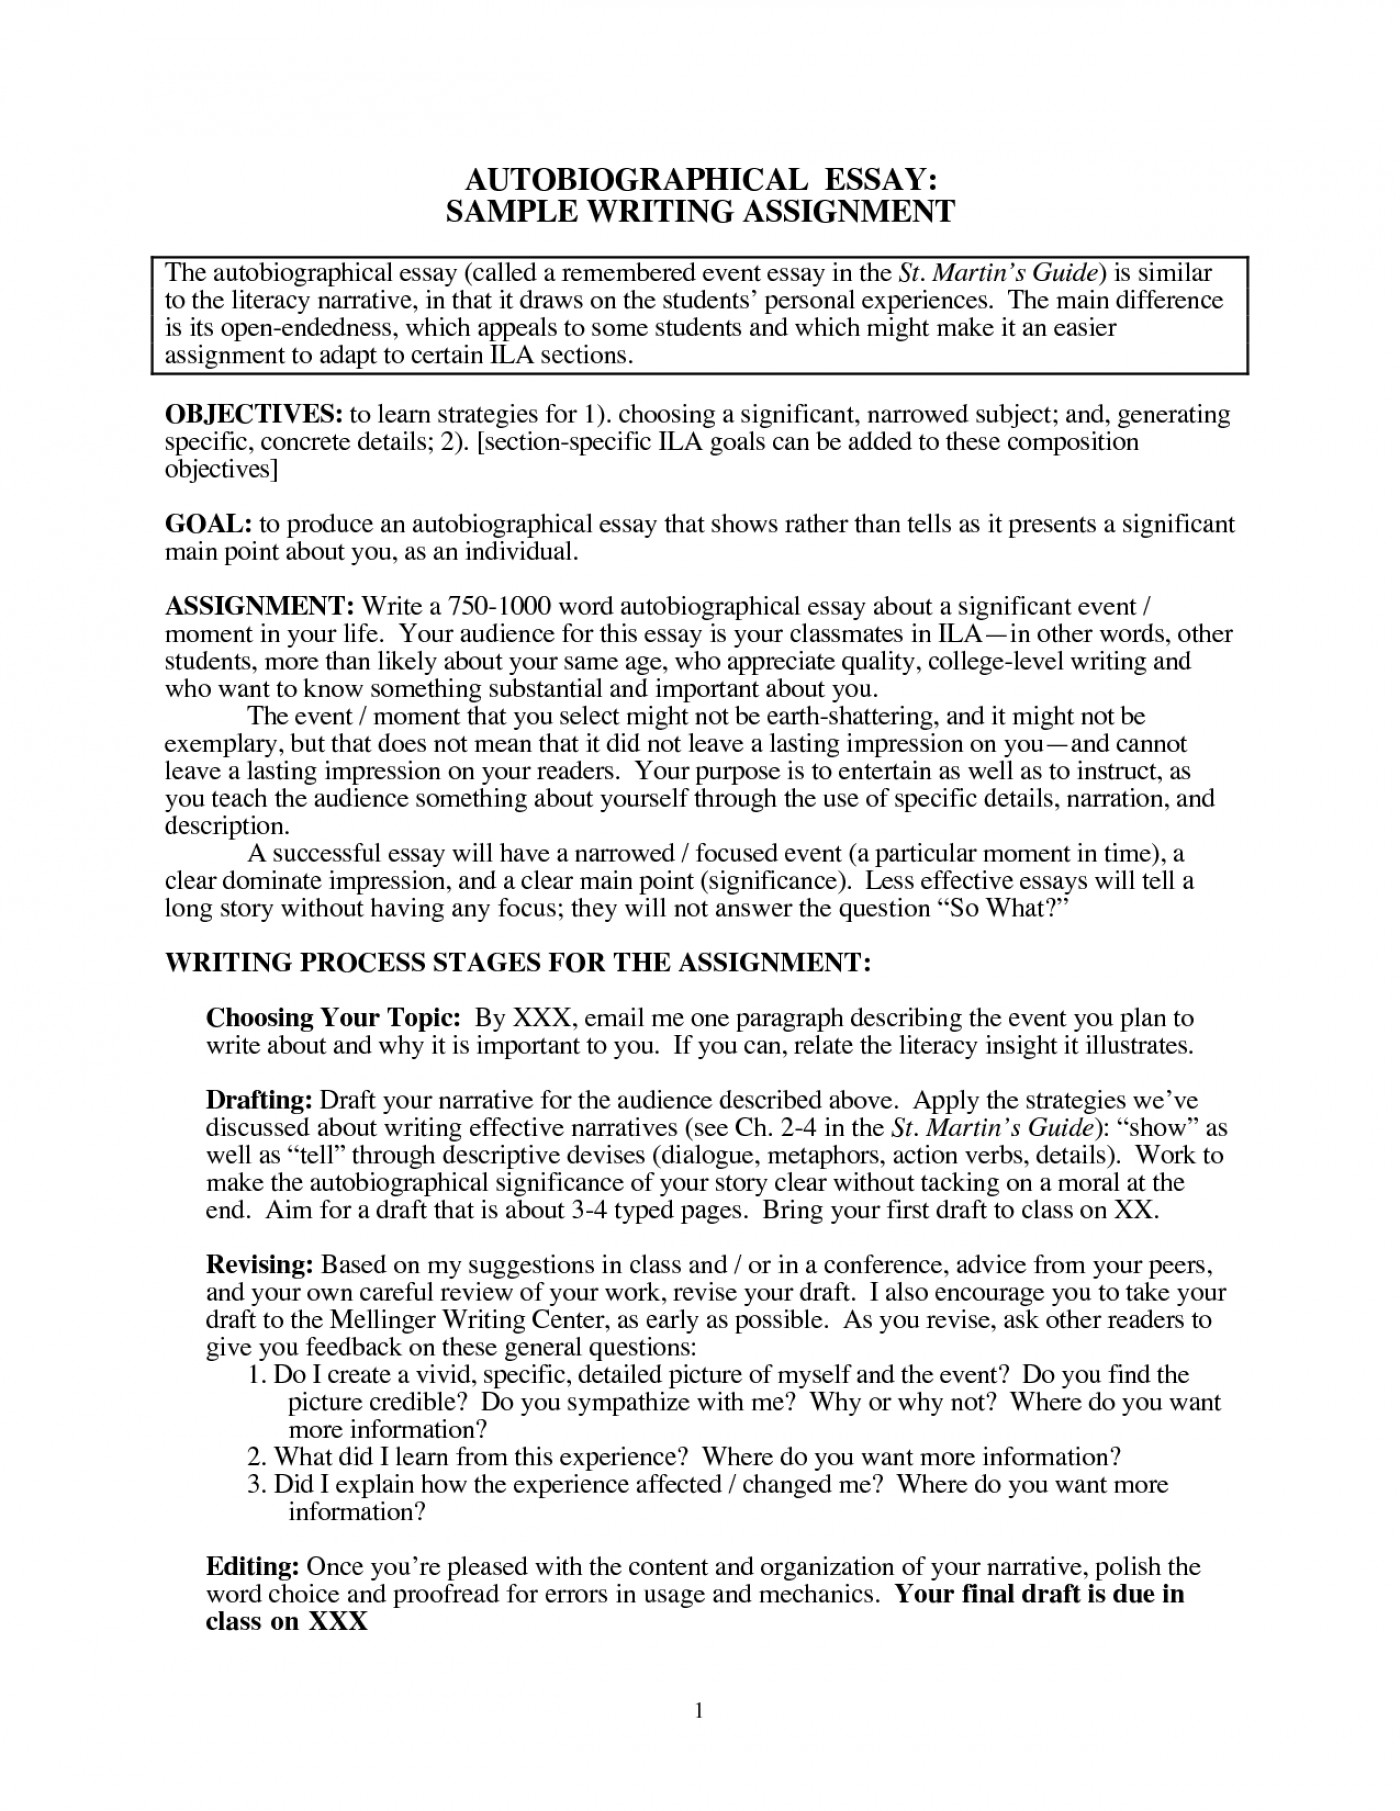 008 Sample Autobiographic Sketch College Autobiography Essay Example Knowing Imagine For Awesome How To Write Exceptional A An Introduction Autobiographical Grad School 1400